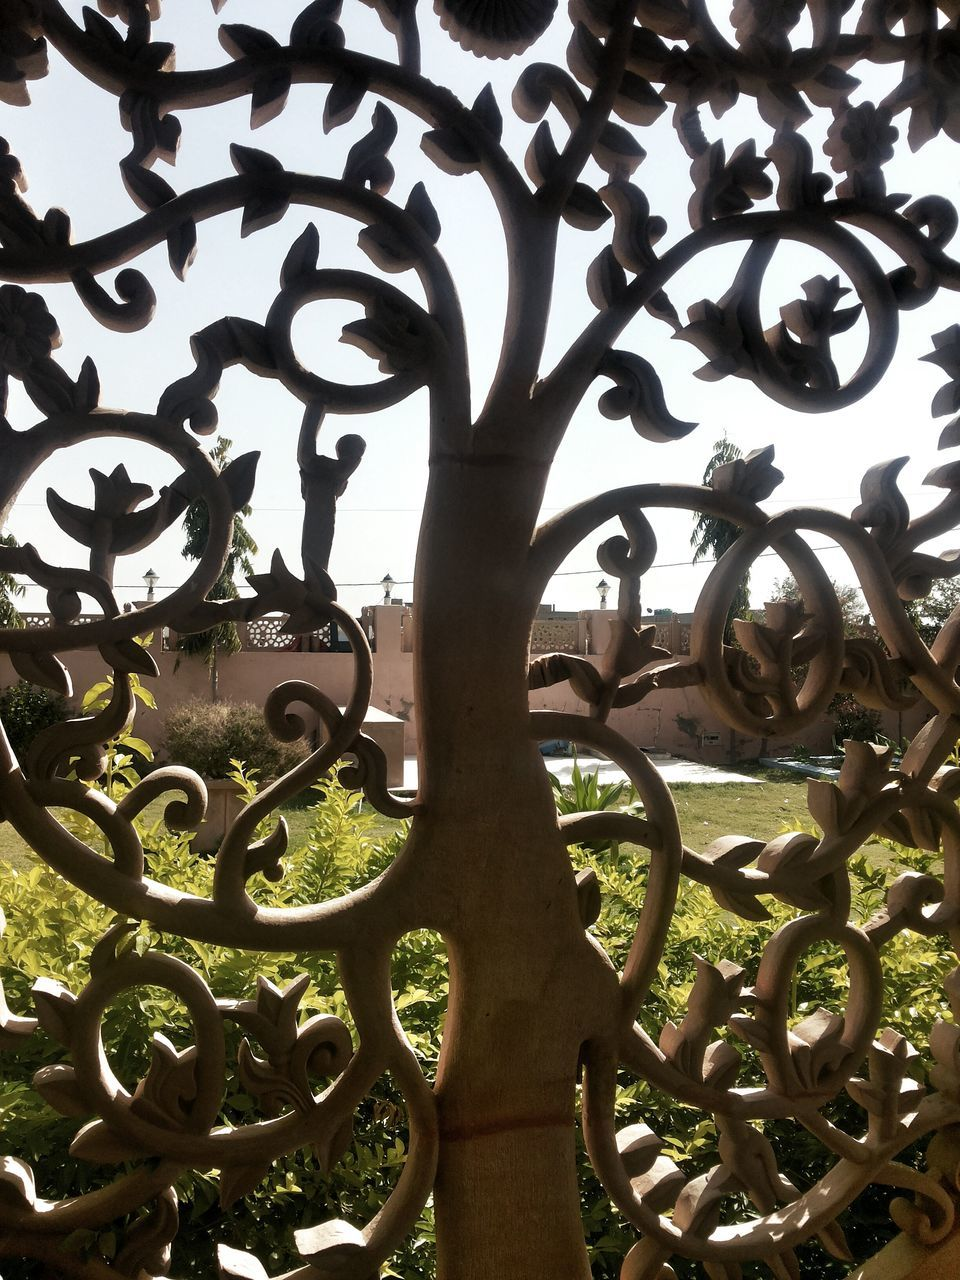 metal, wrought iron, day, outdoors, close-up, no people, tree, sky